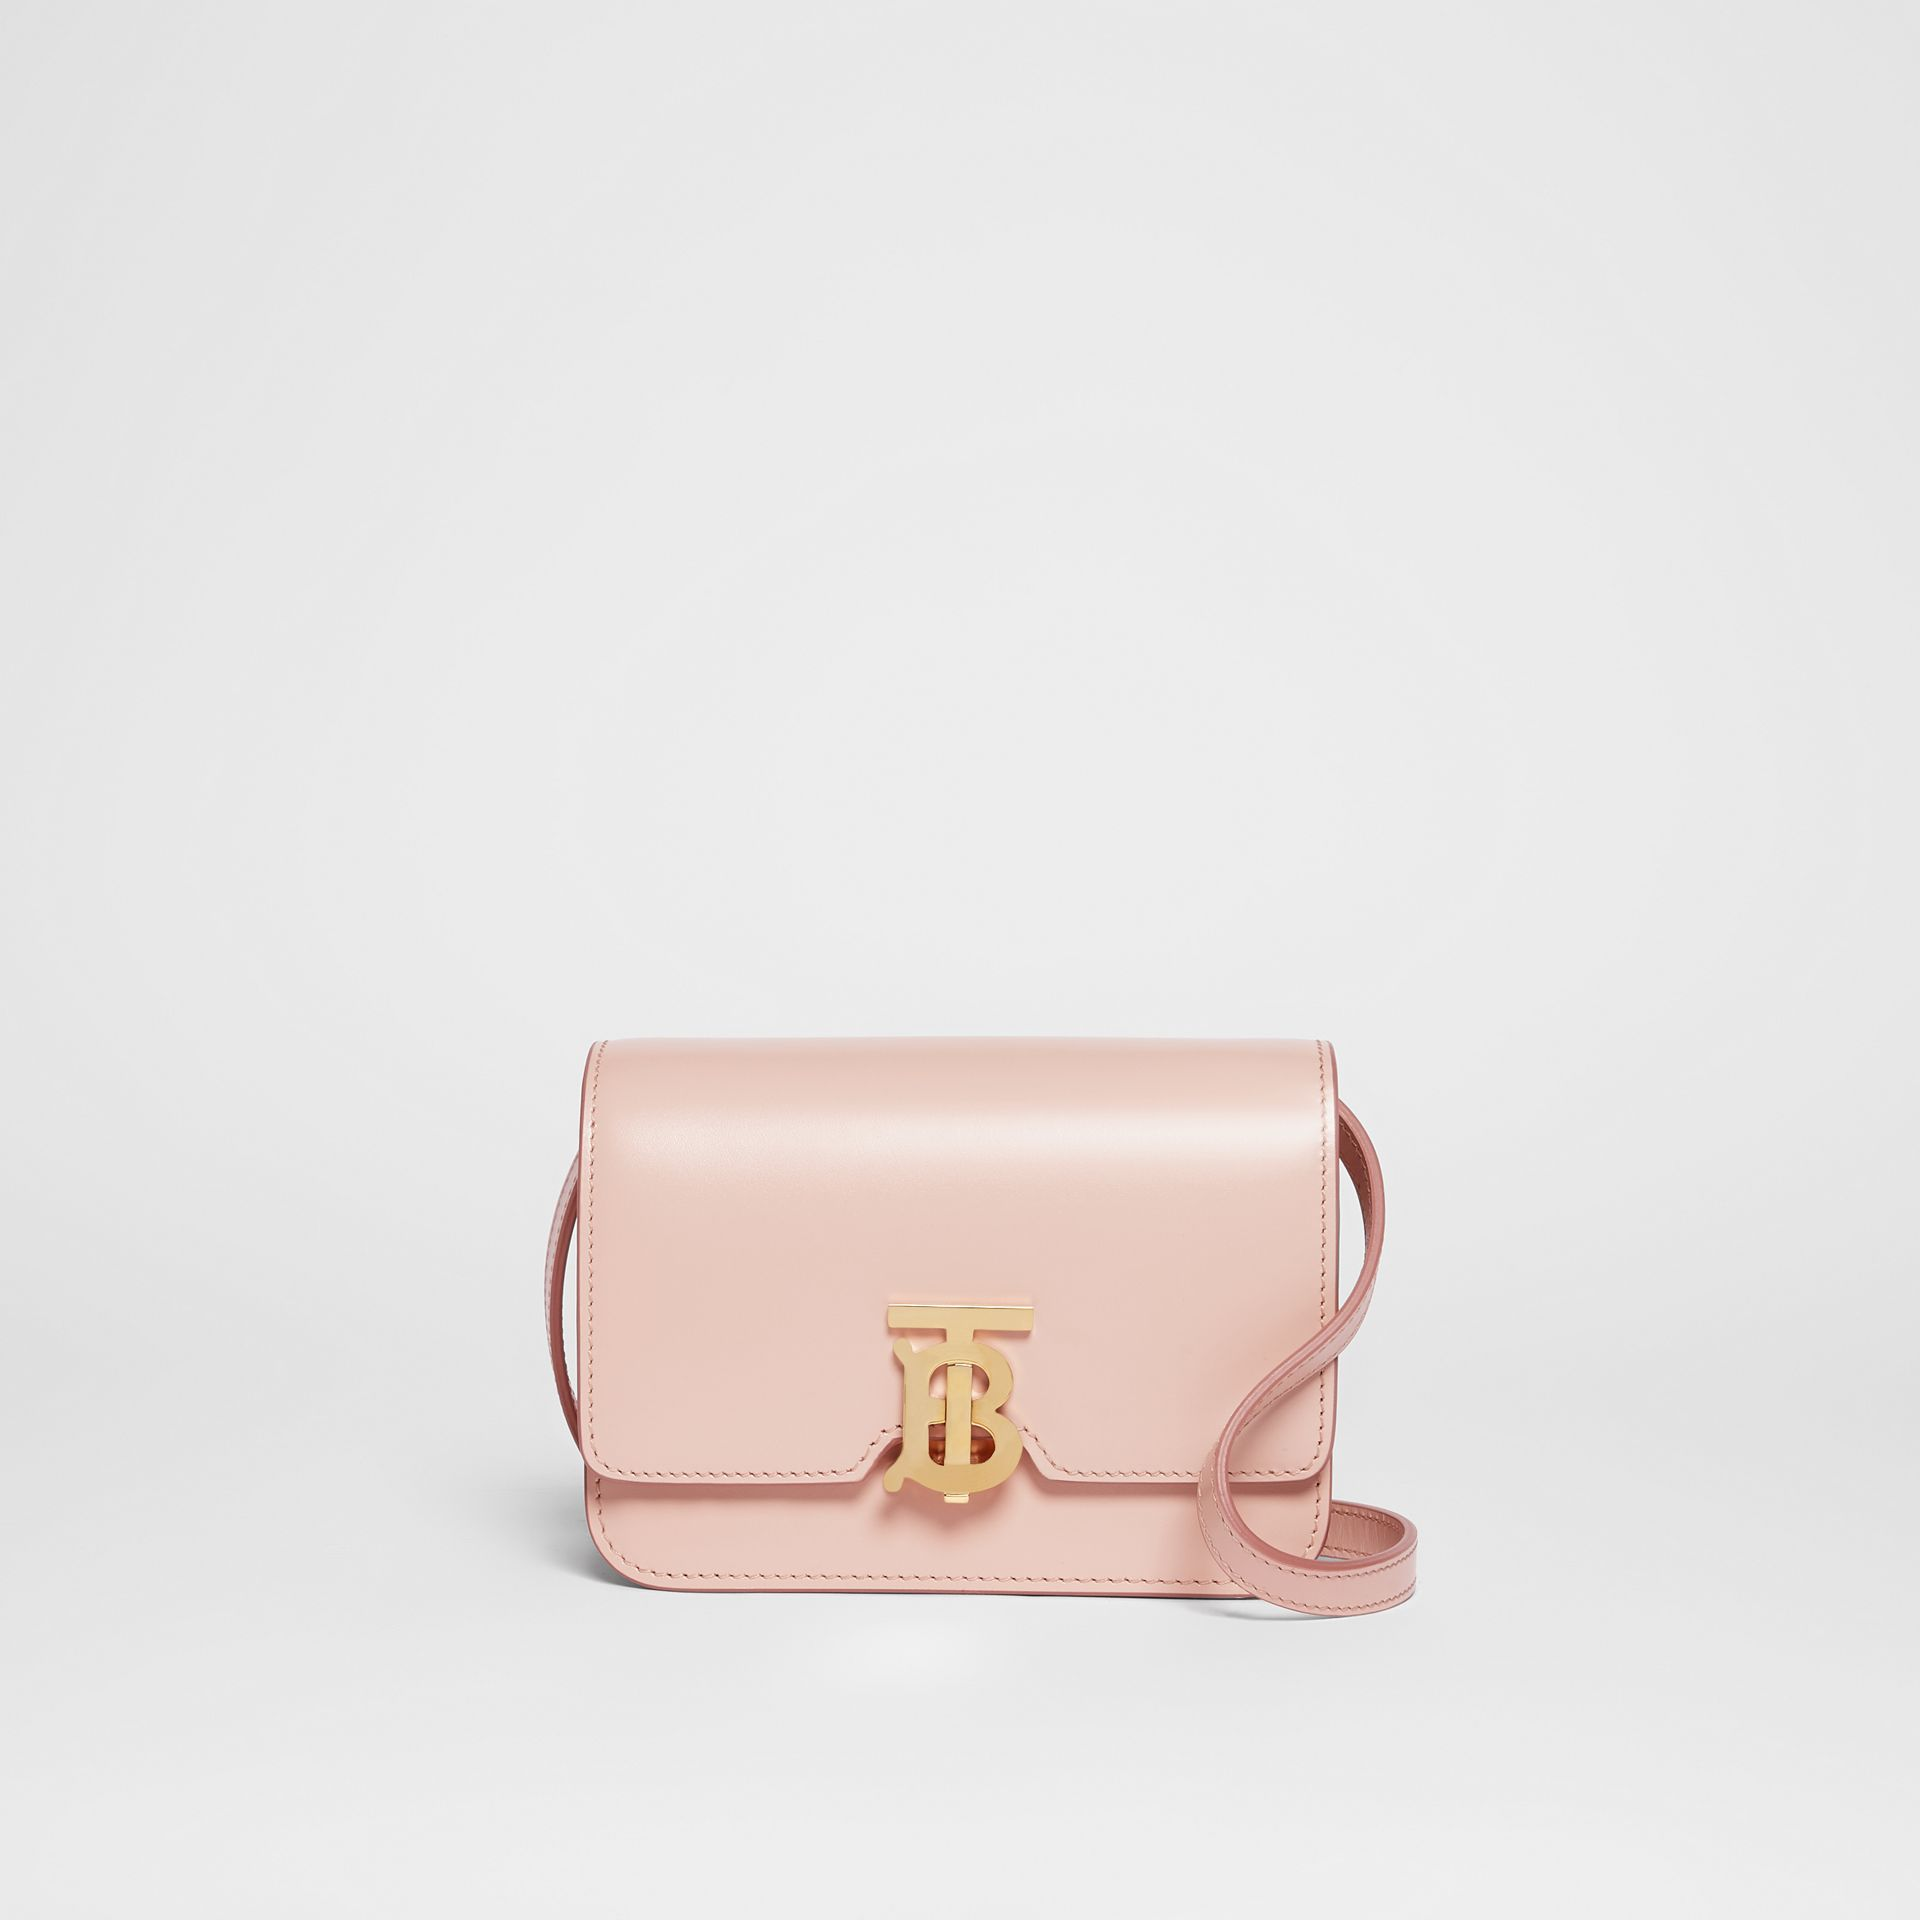 Mini Leather TB Bag in Rose Beige - Women | Burberry Hong Kong S.A.R - gallery image 0